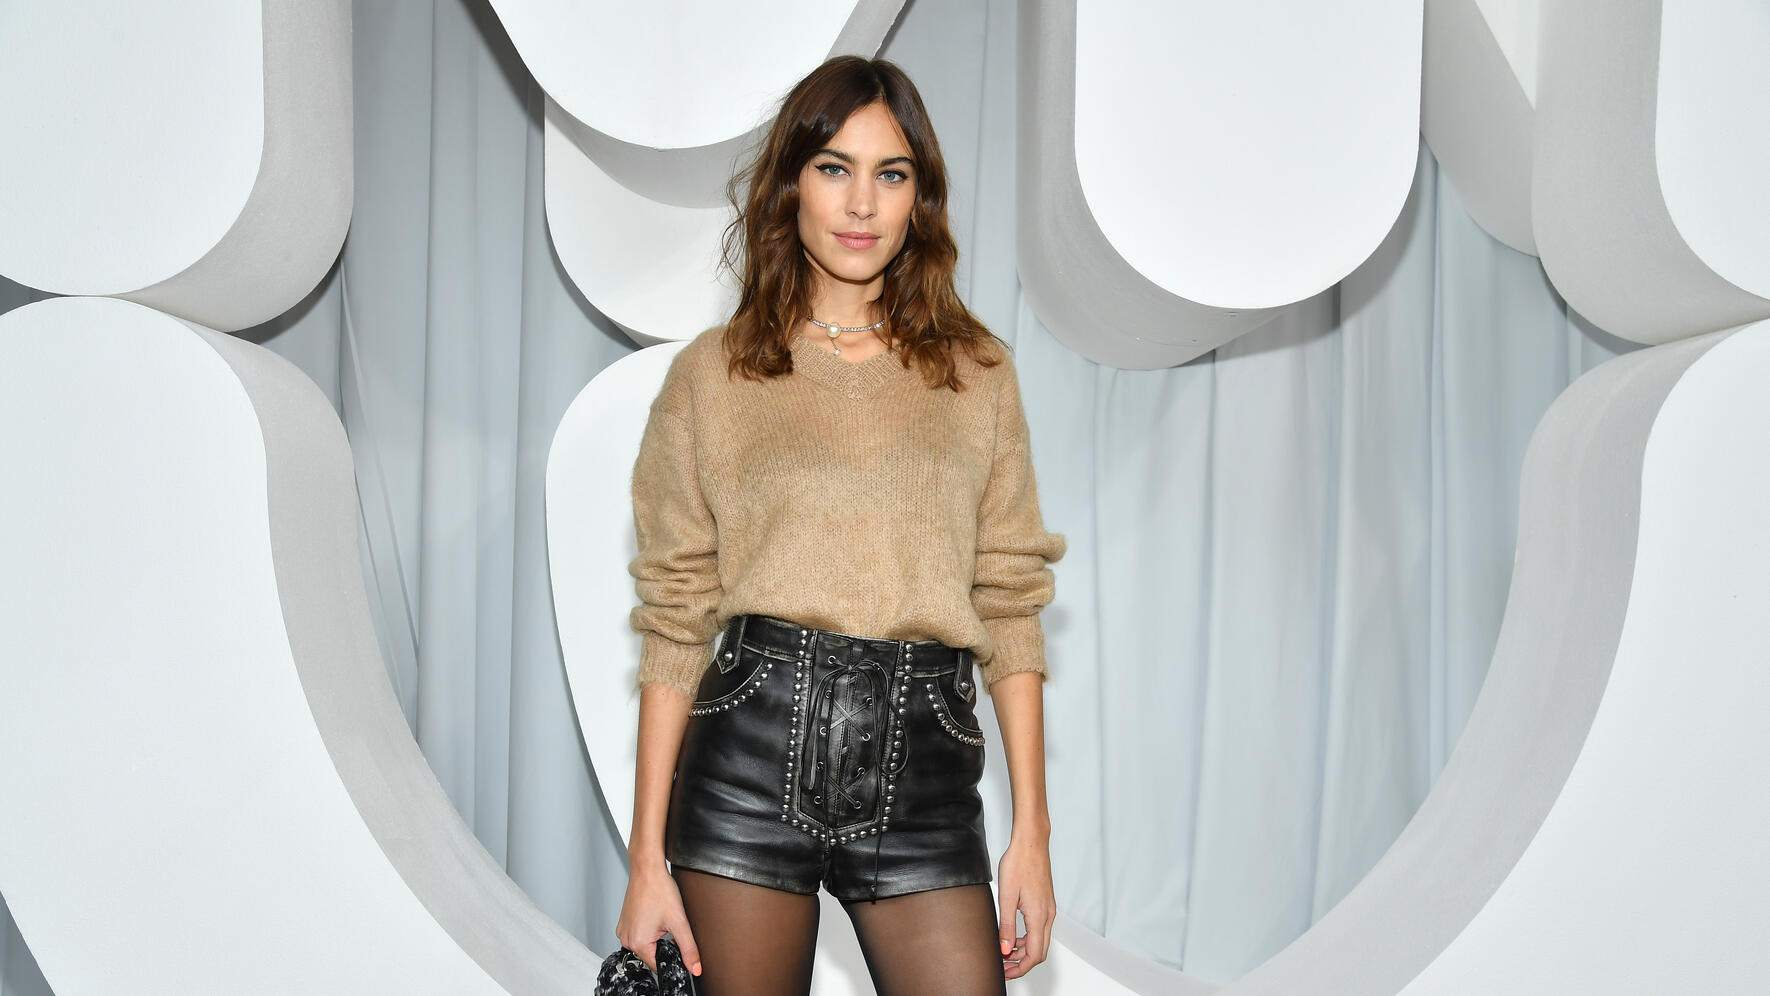 PARIS, FRANCE - OCTOBER 02:  Alexa Chung attends the Miu Miu show as part of the Paris Fashion Week Womenswear Spring/Summer 2019 on October 2, 2018 in Paris, France.  (Photo by Pascal Le Segretain/Getty Images)